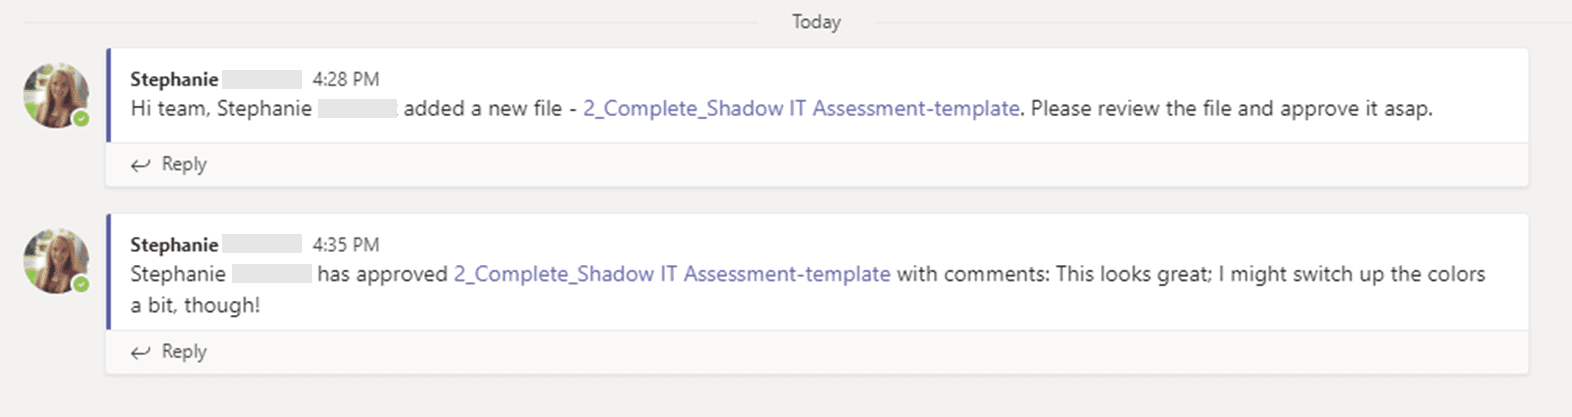 Automatic message by flow in Microsoft Teams